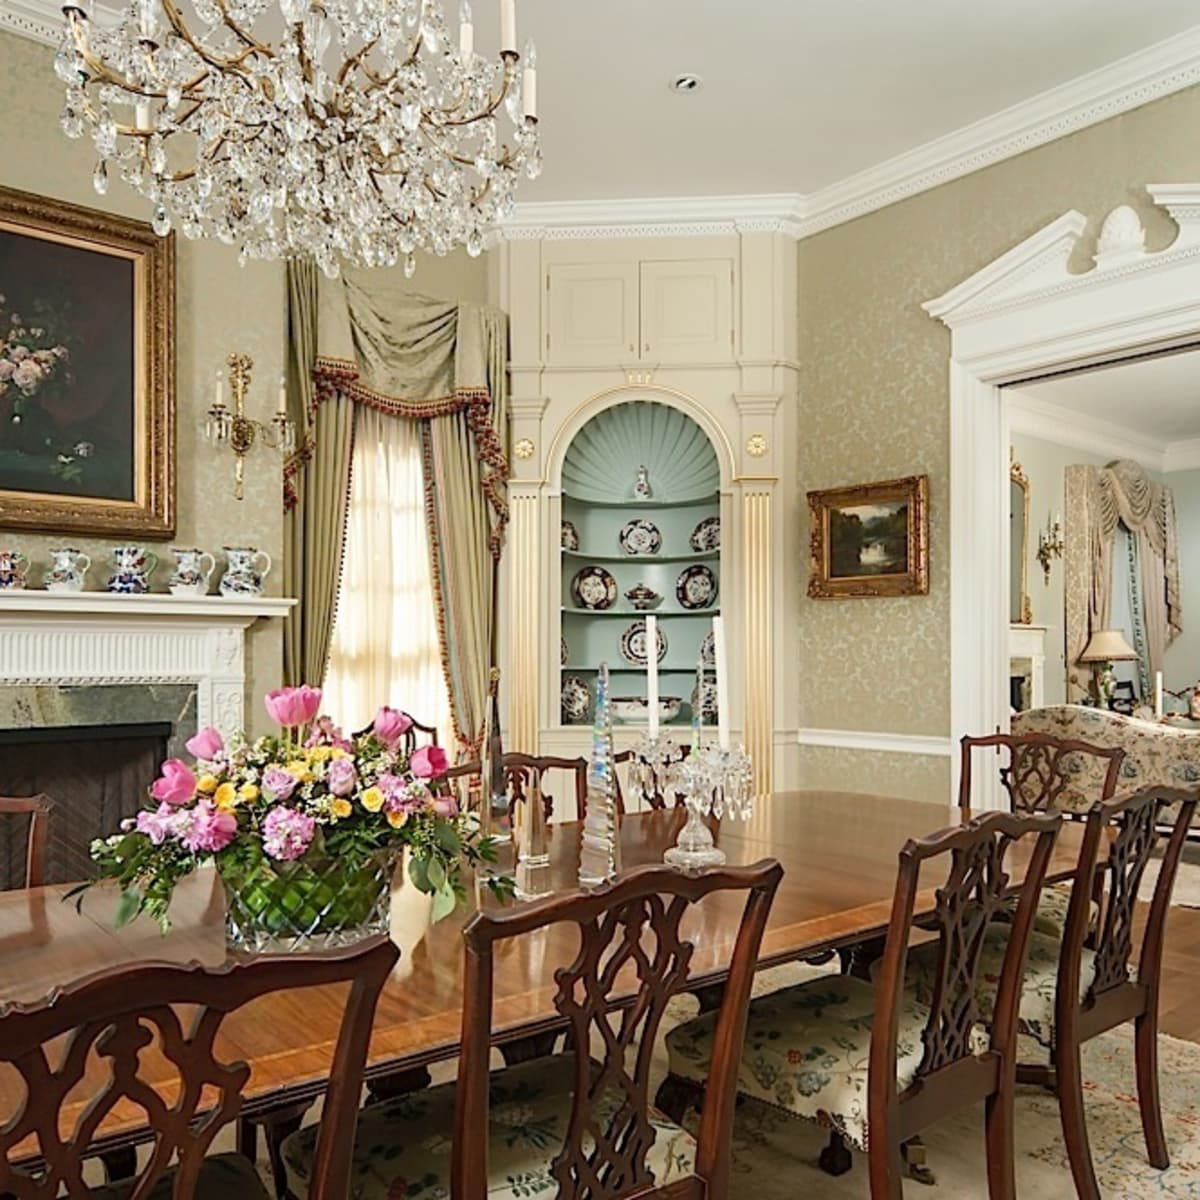 901 Kirby Dr. March 2016, dining room